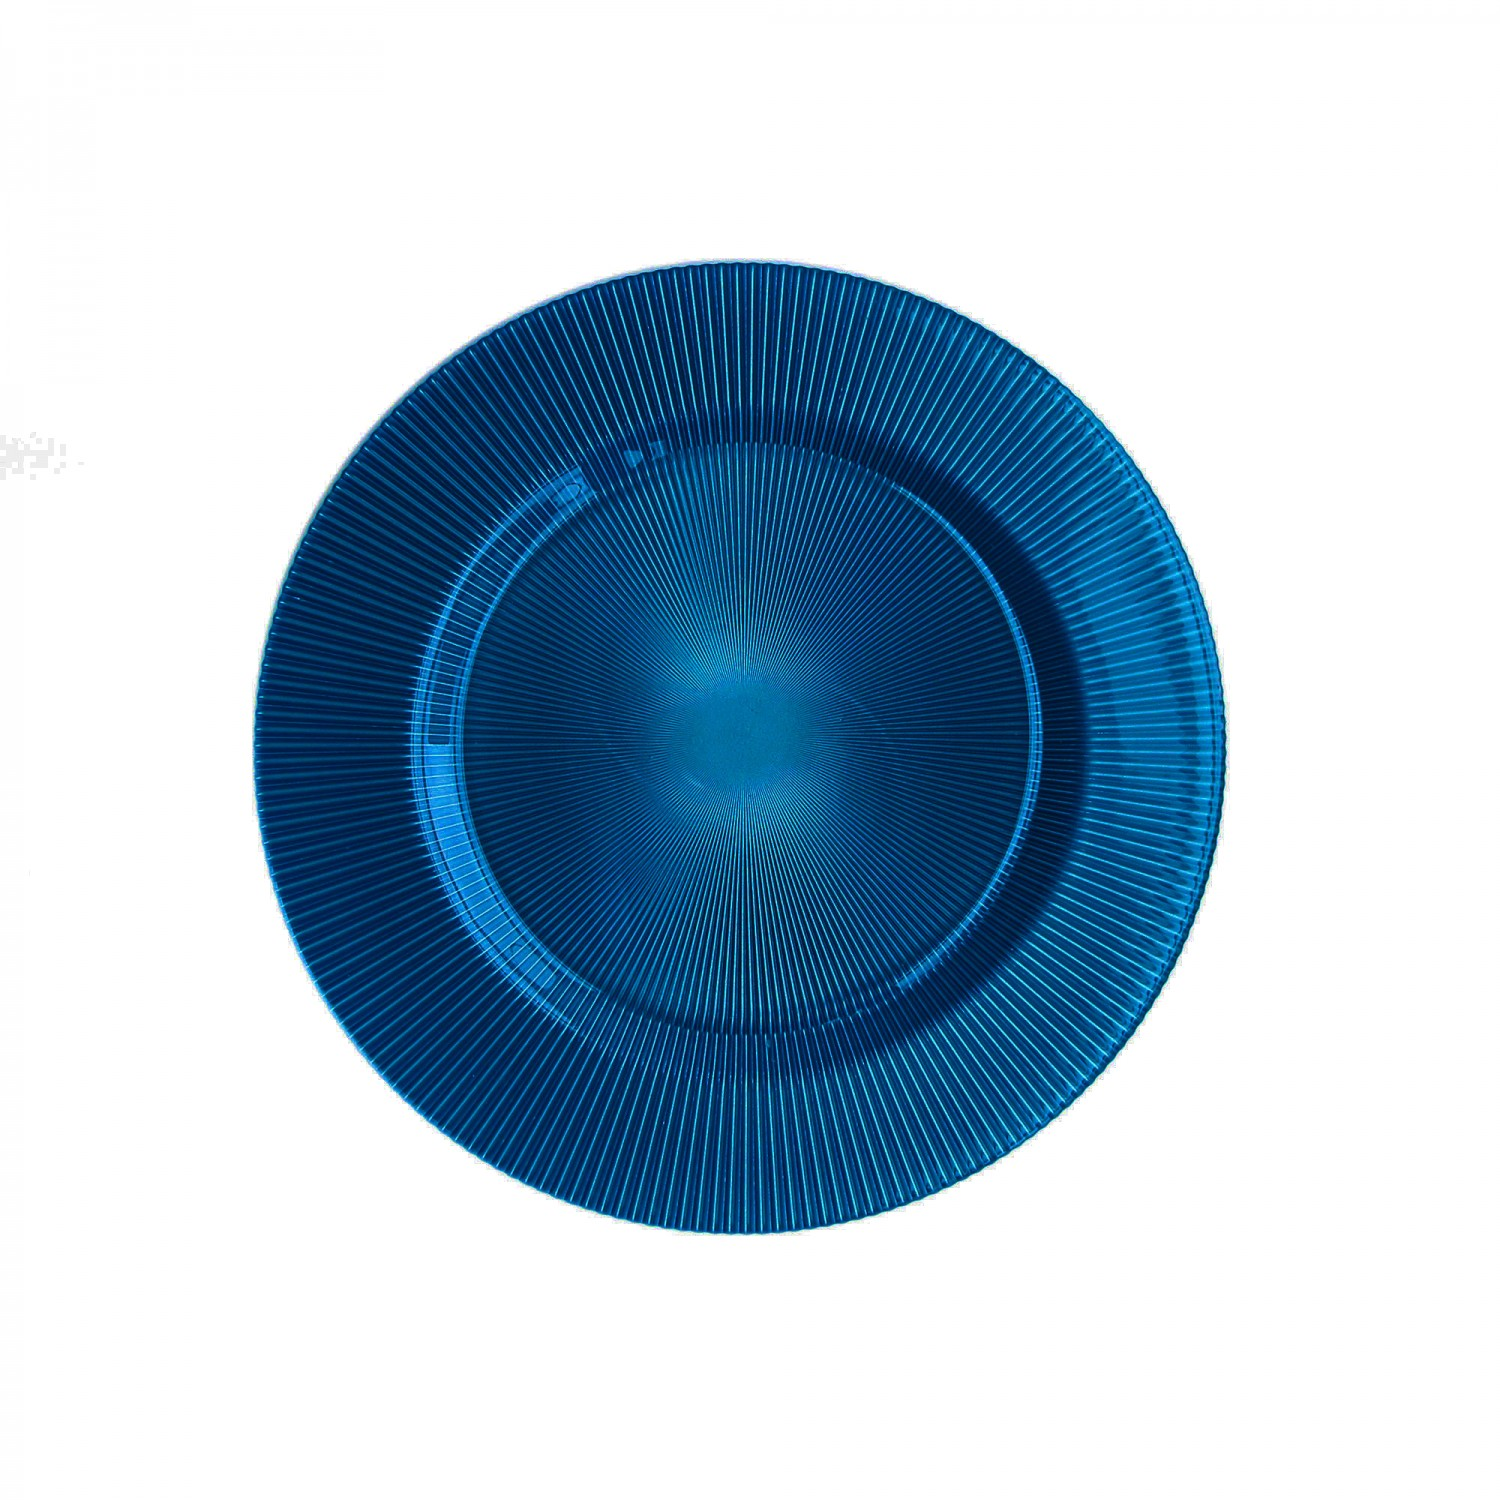 The Jay Companies 1470345 Round Sunray Cobalt Glass Charger Plate 13""